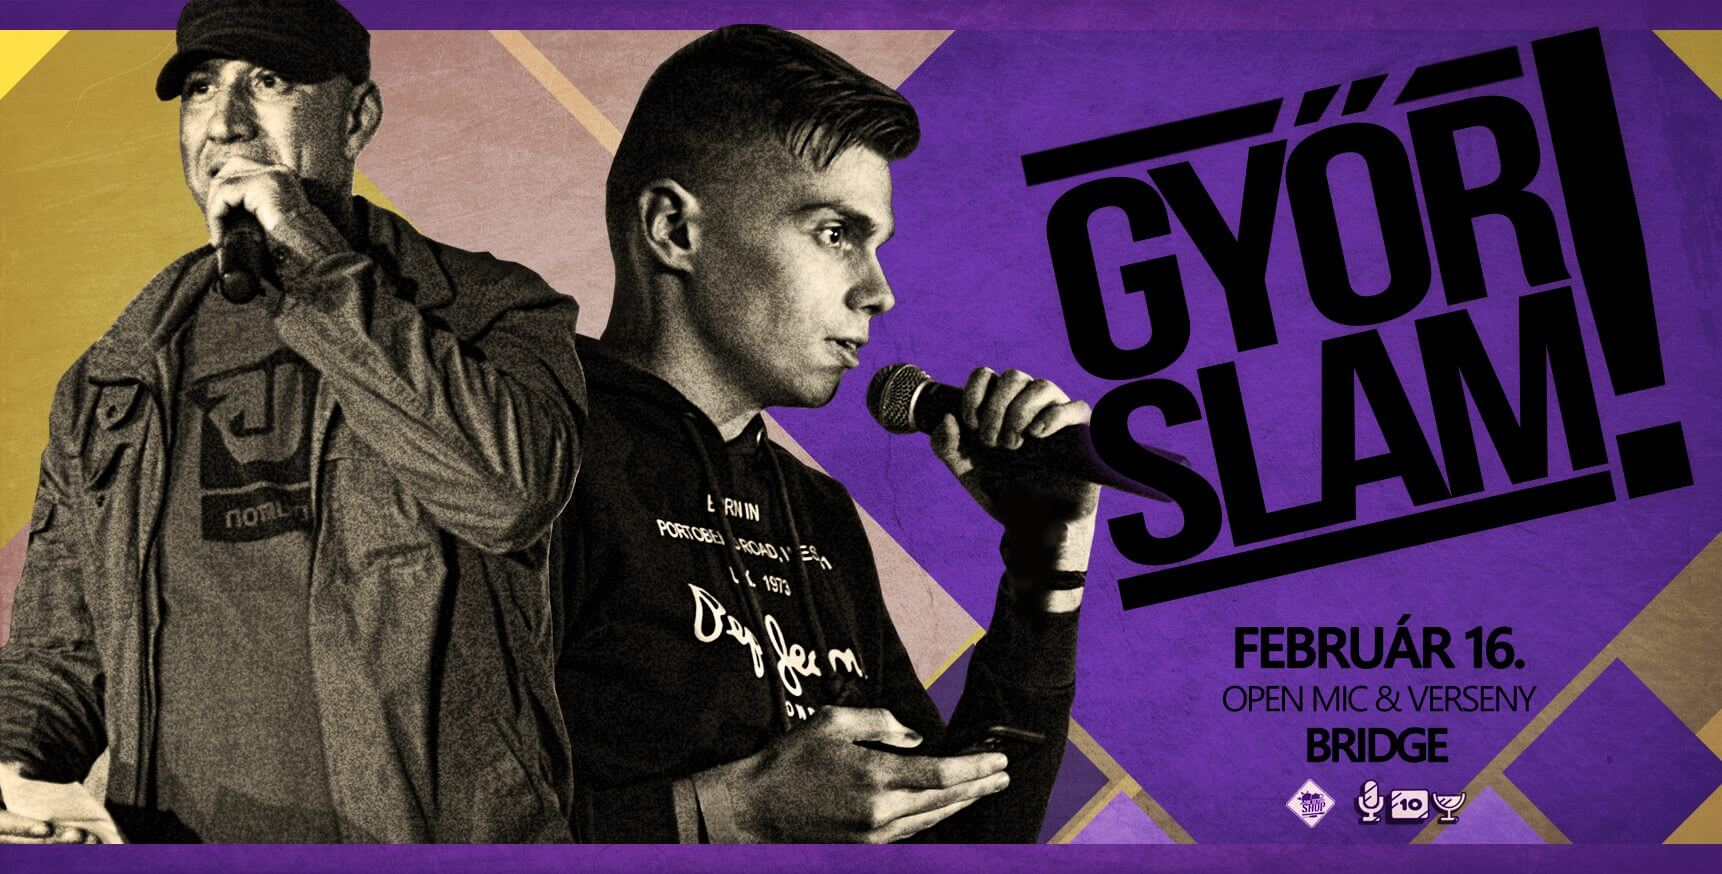 Győrslam! @Bridge /02.16./